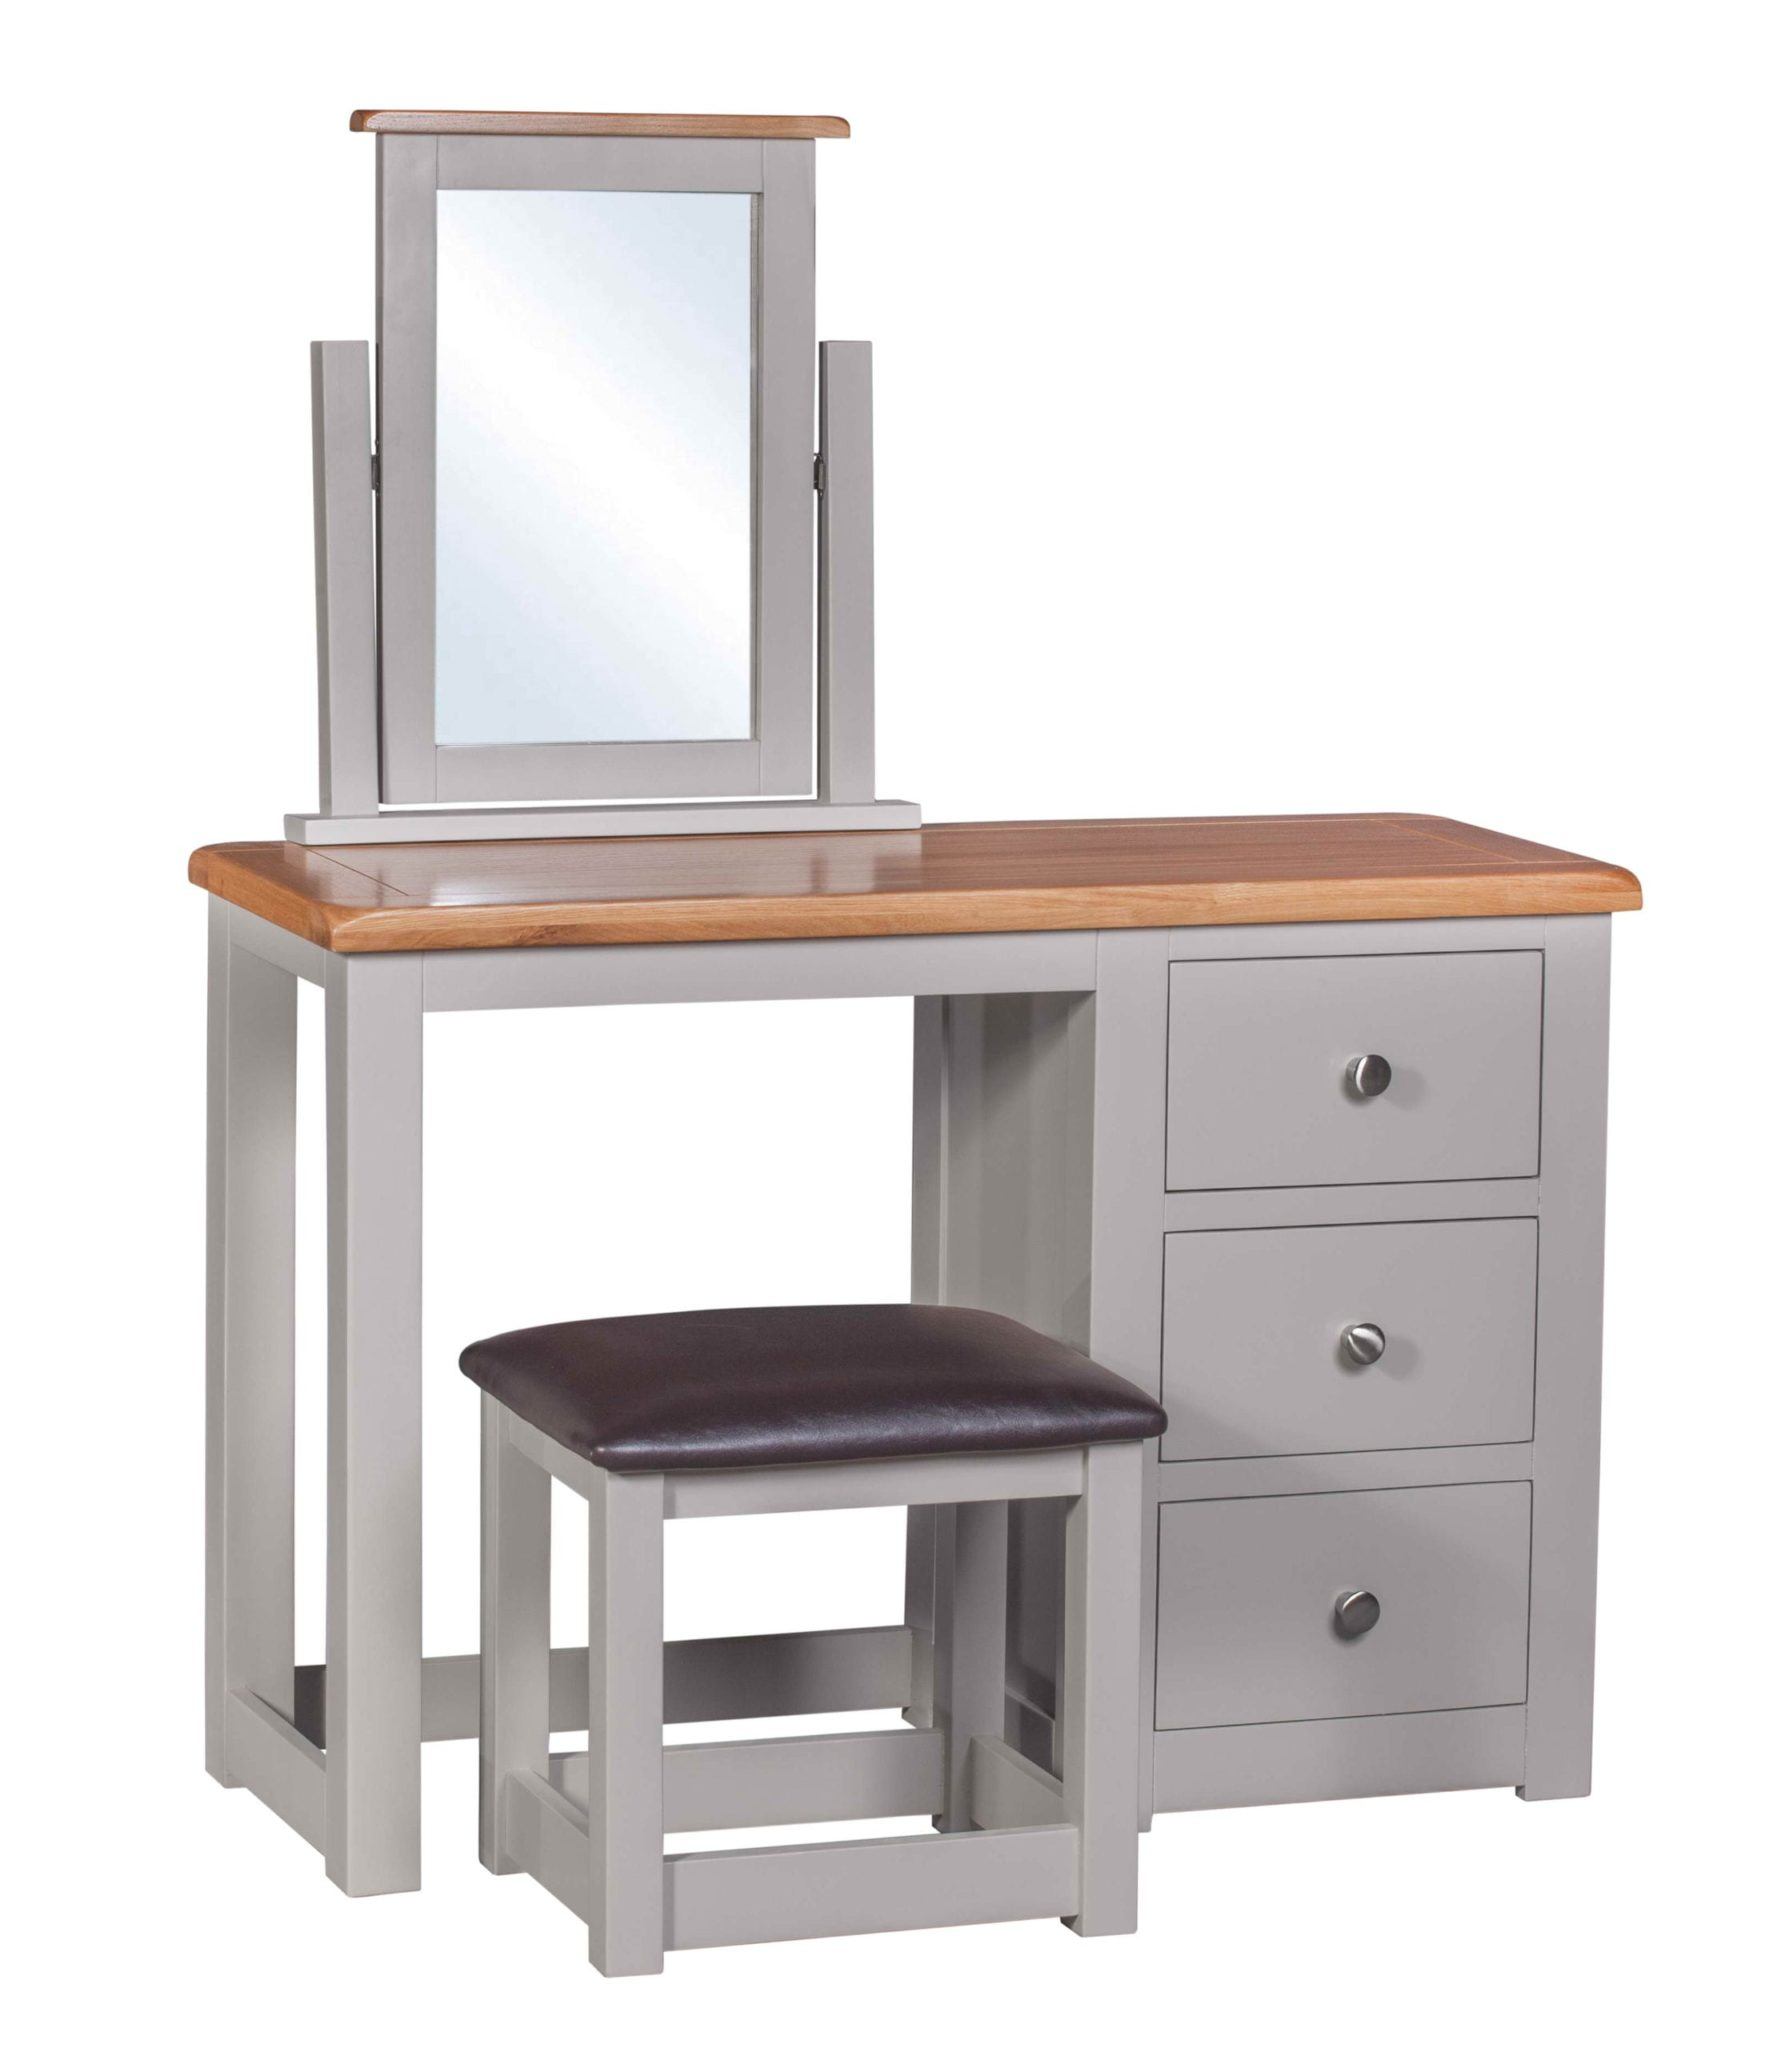 DIADTST Diamond painted dressing table with stool and mirror